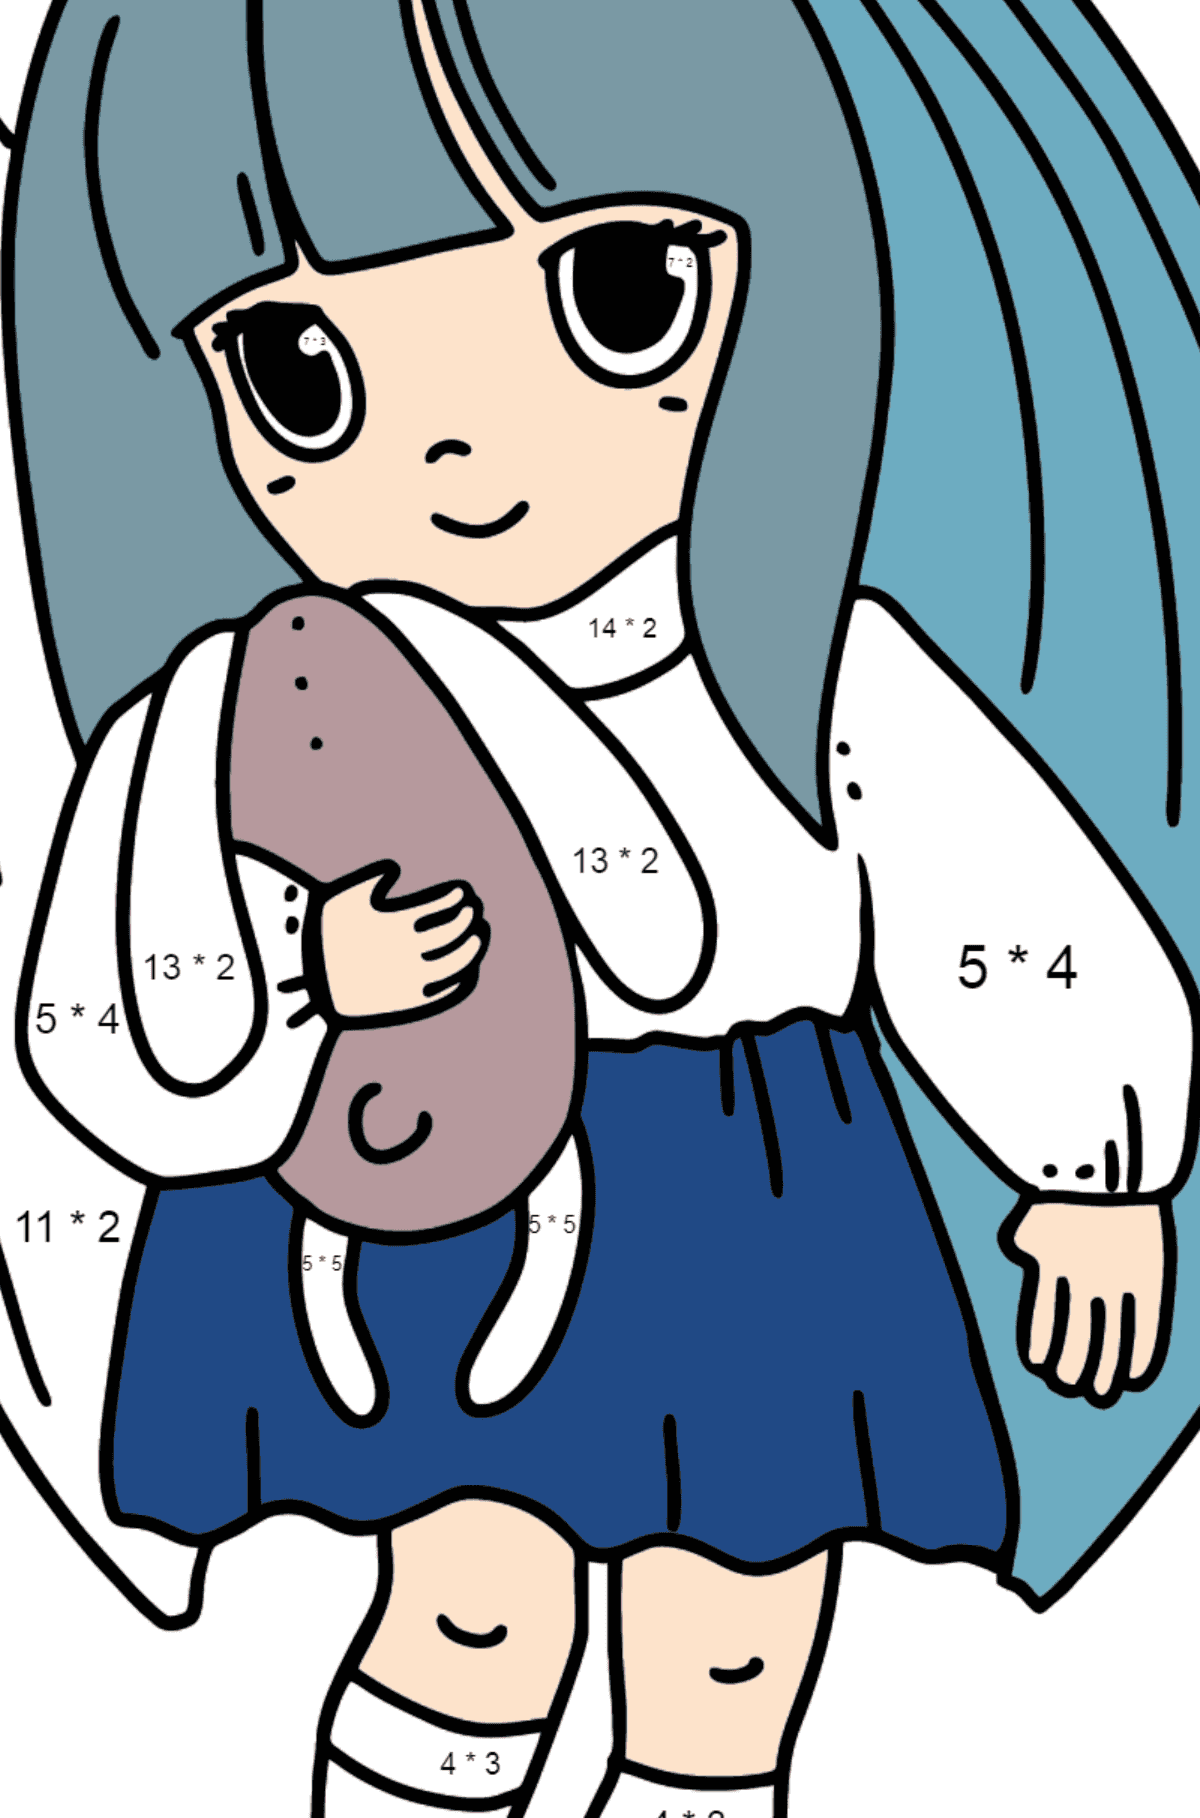 Anime Little Girl Coloring Pages - Math Coloring - Multiplication for Kids